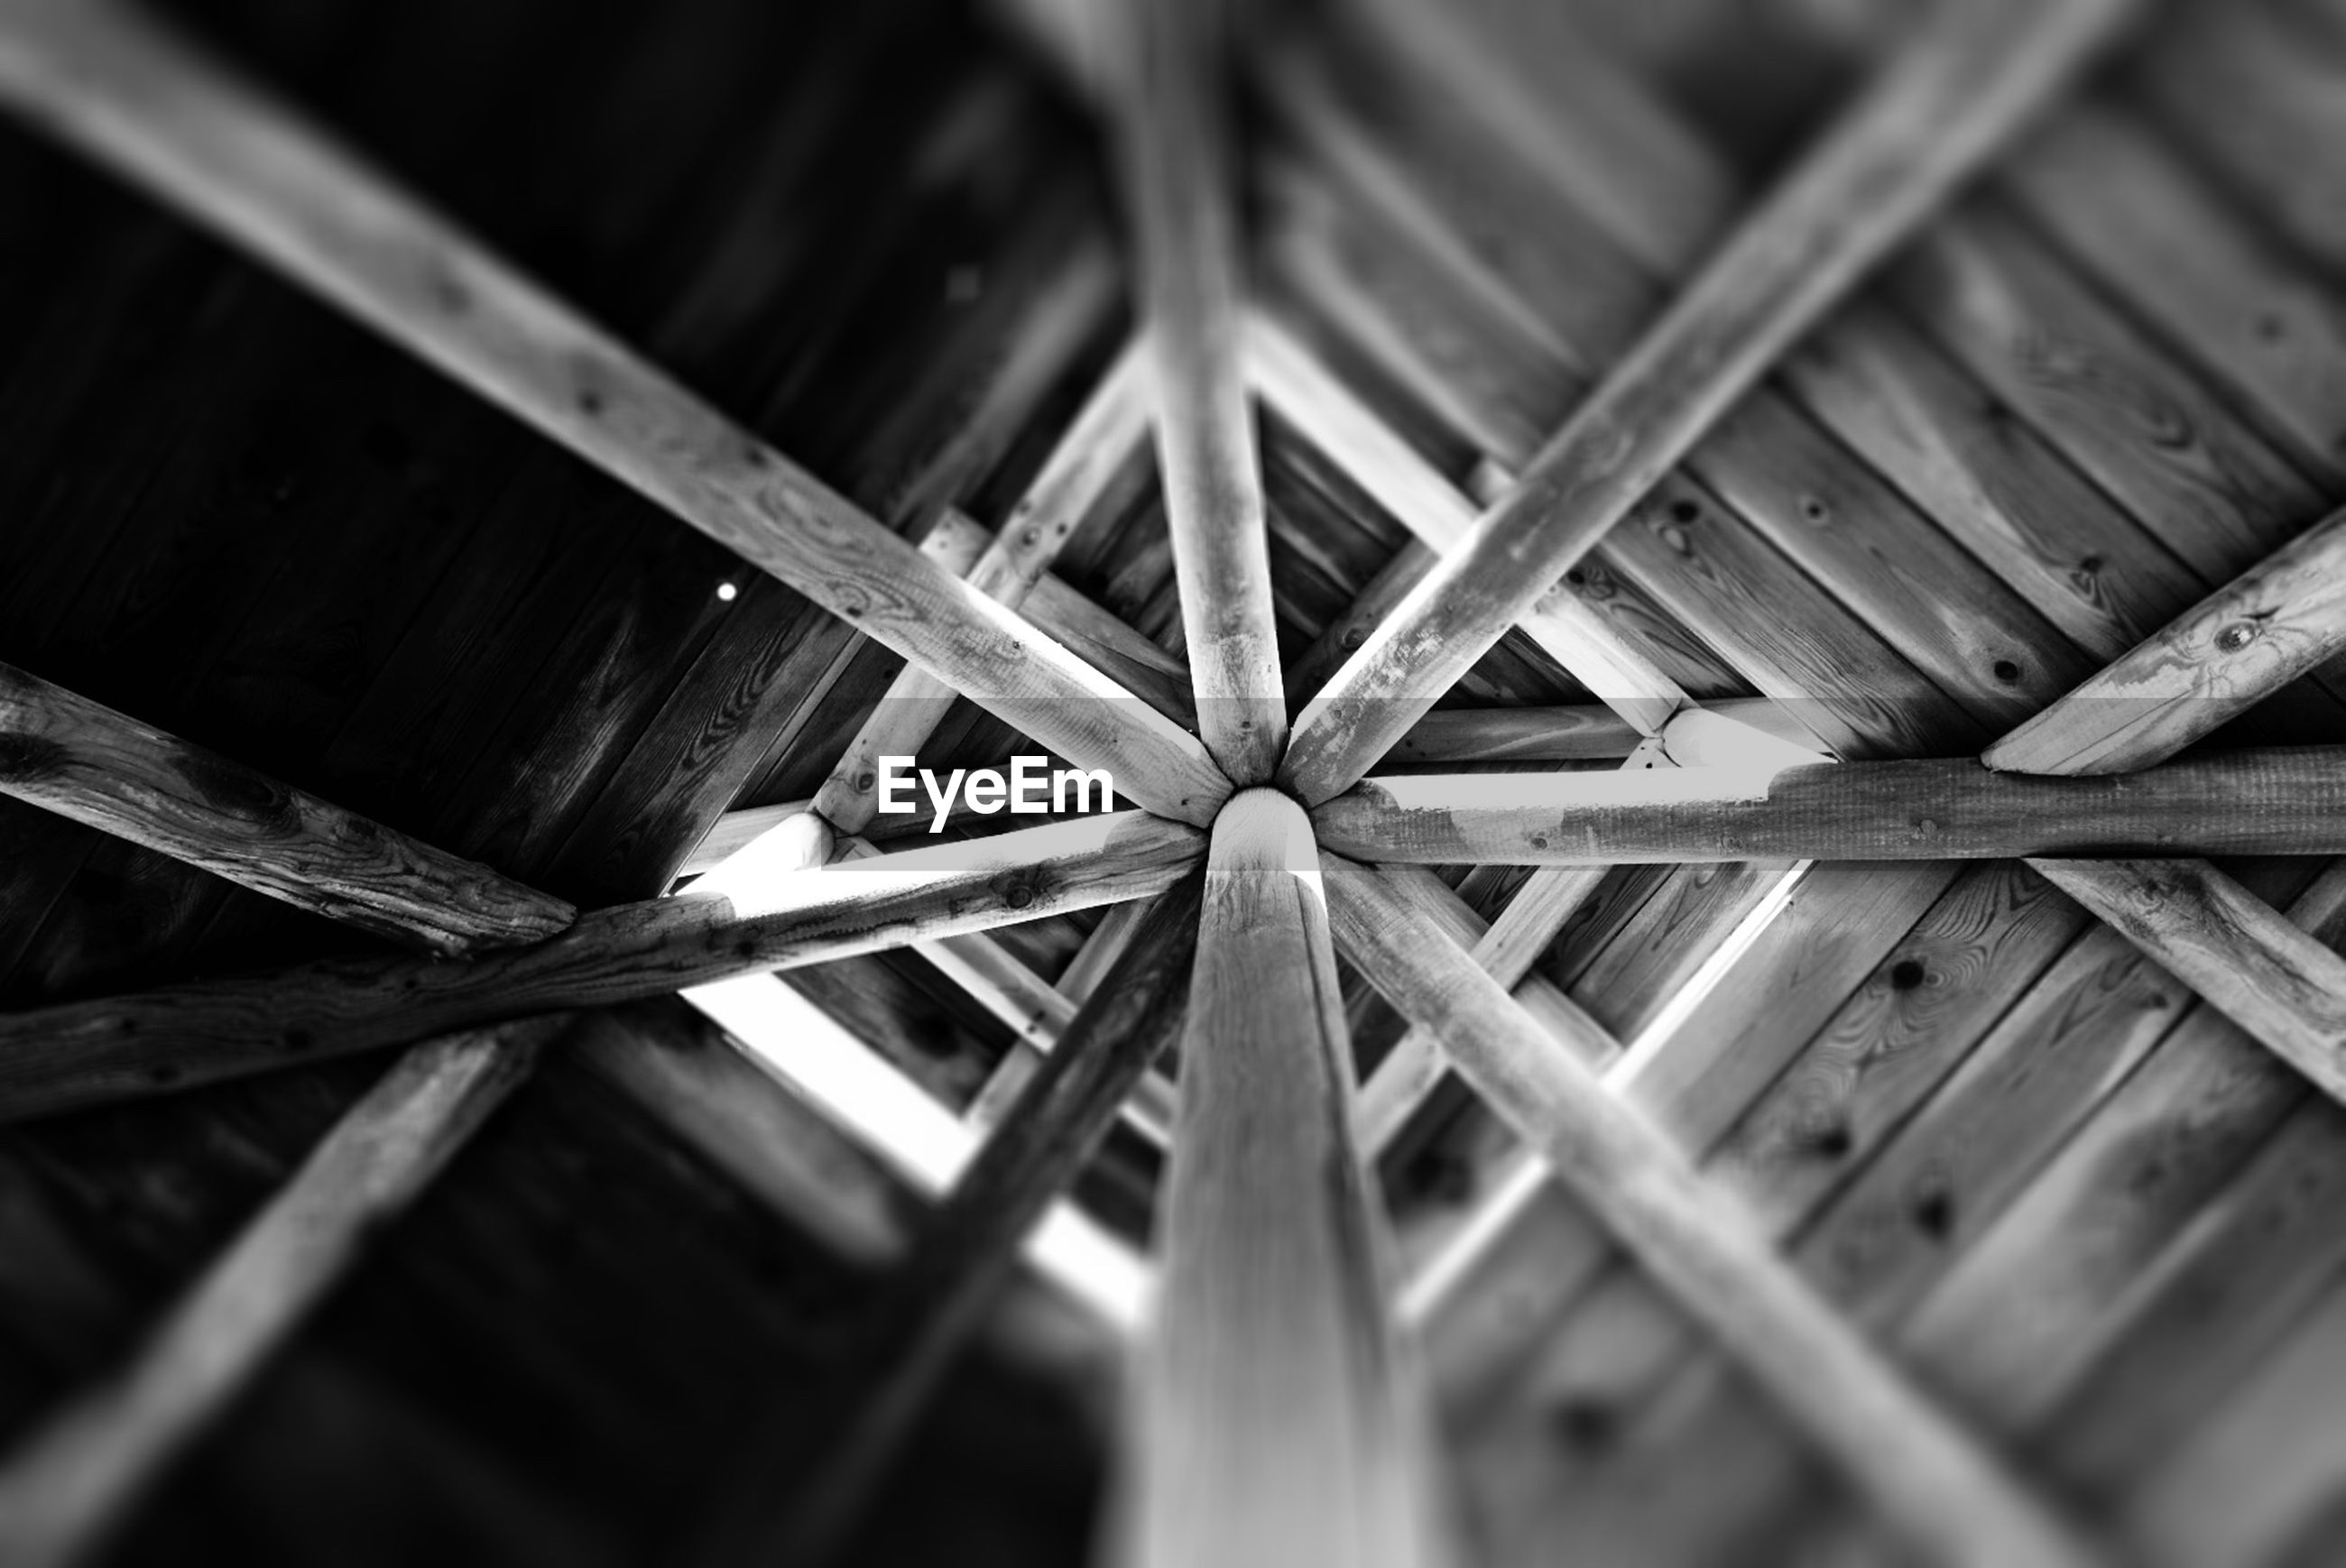 Low angle view of wooden house ceiling